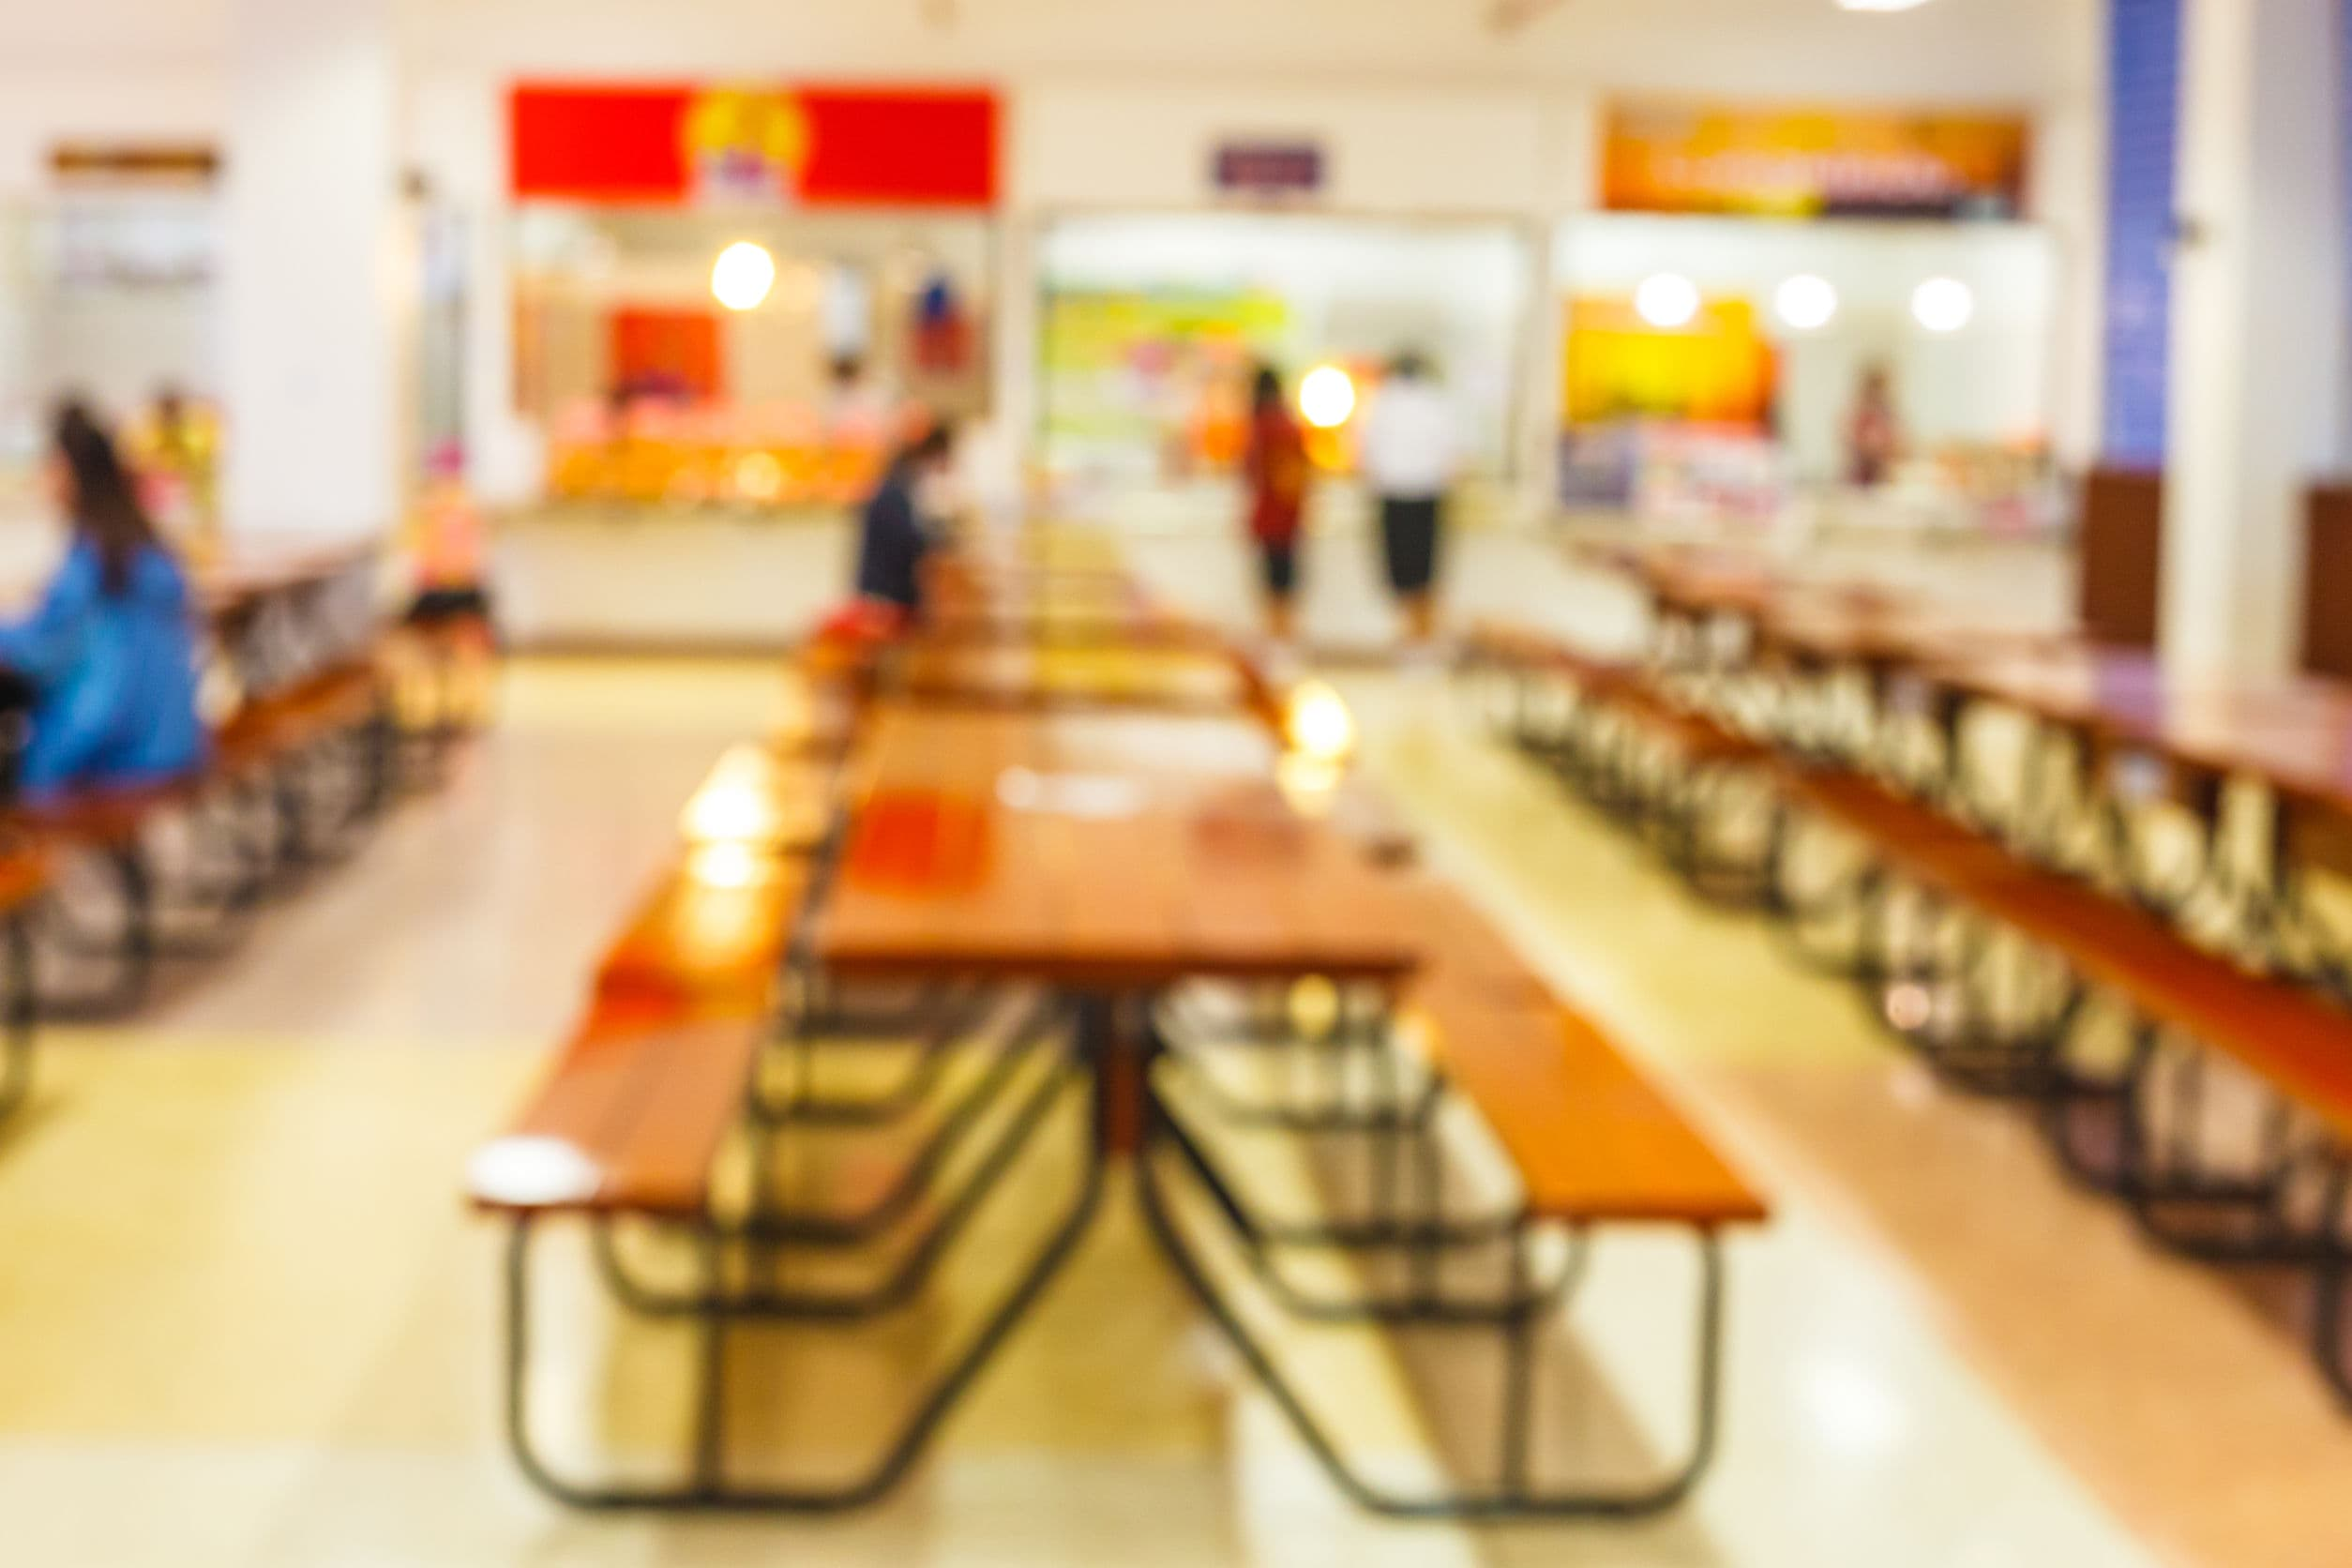 In Order To Provide Adequate Nutrition, School's Need To Invest In More Proper Equipment